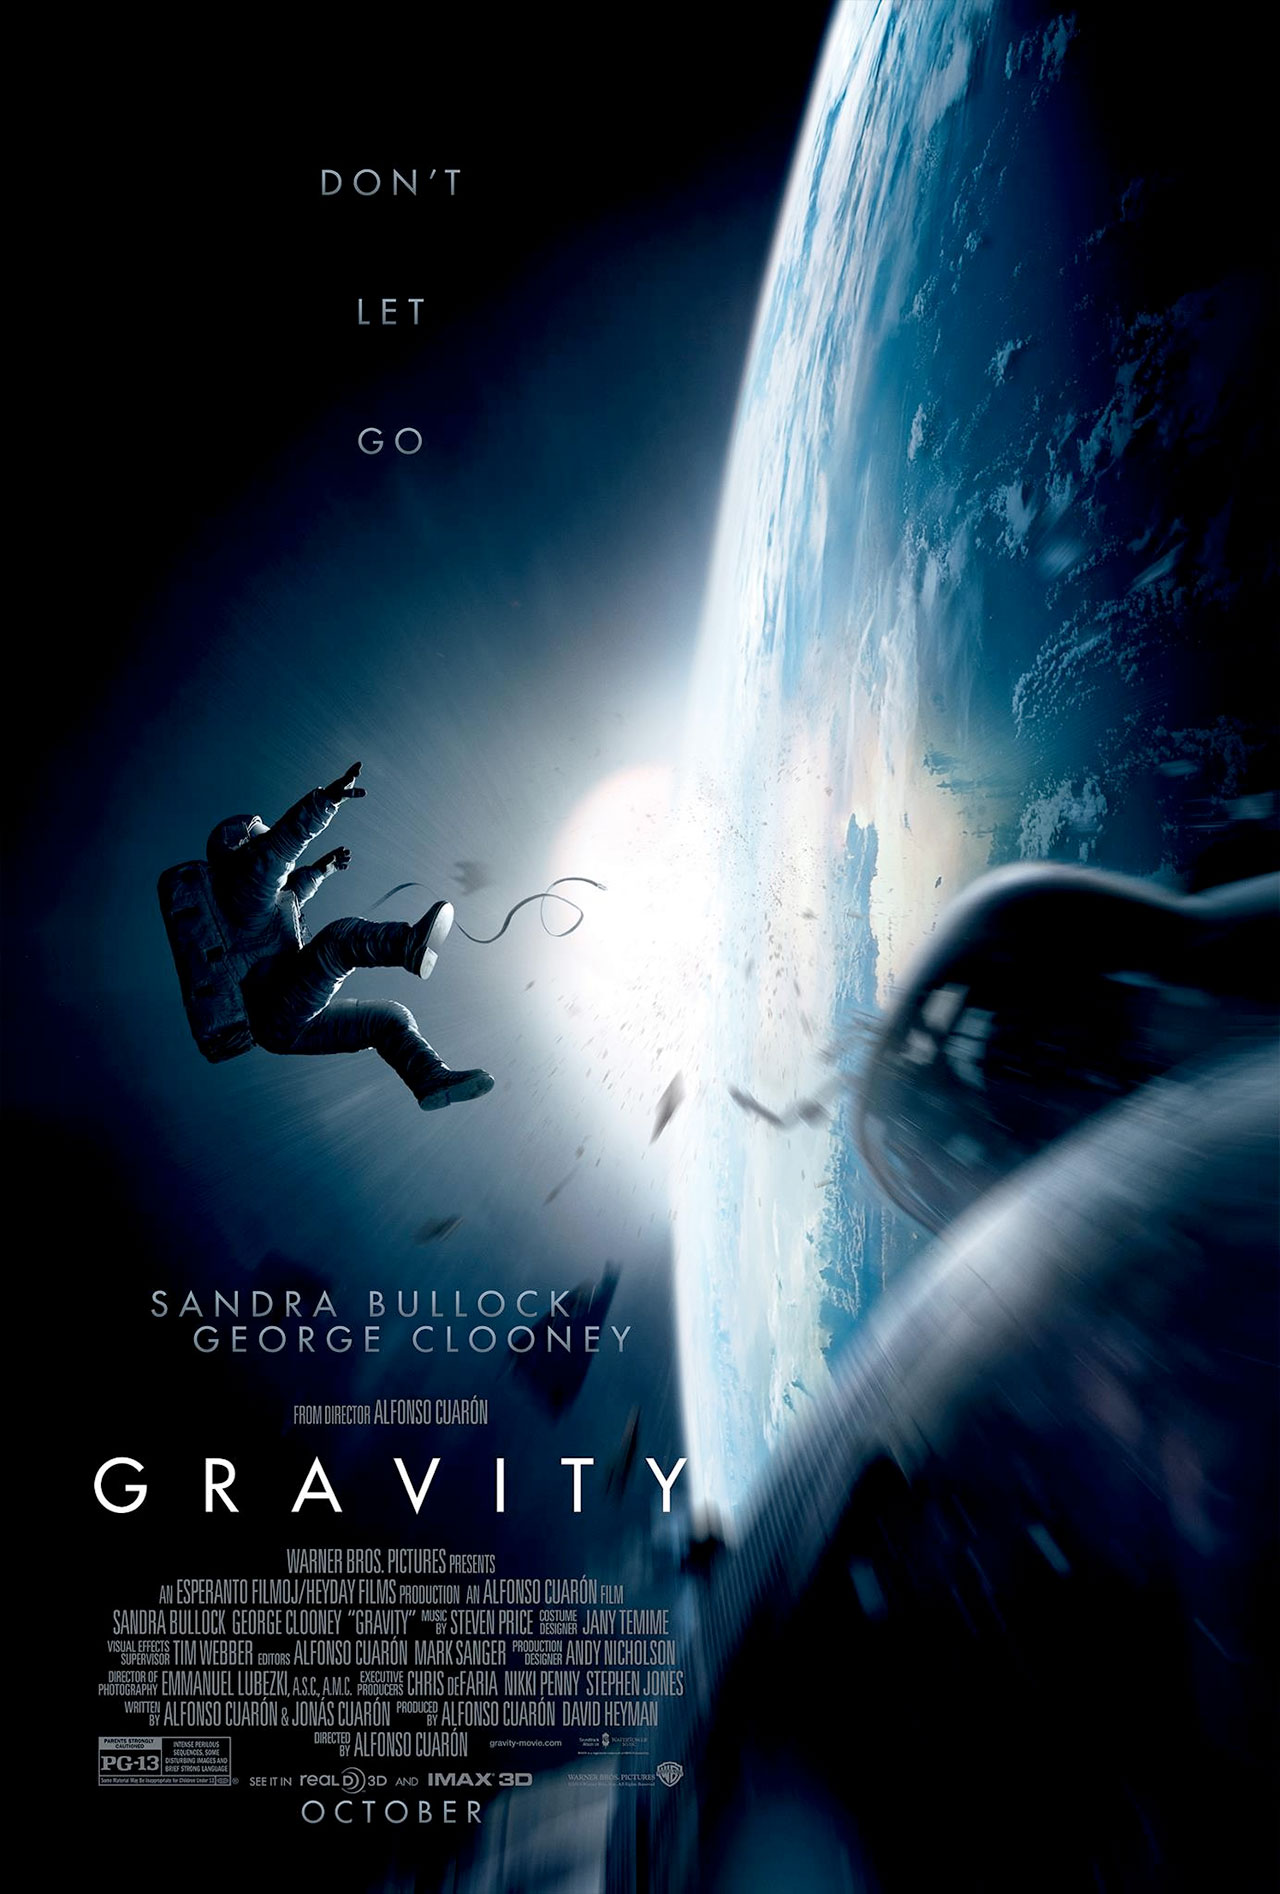 'Gravity' Film Trailer Reveals George Clooney, Sandra Bullock as Astronauts